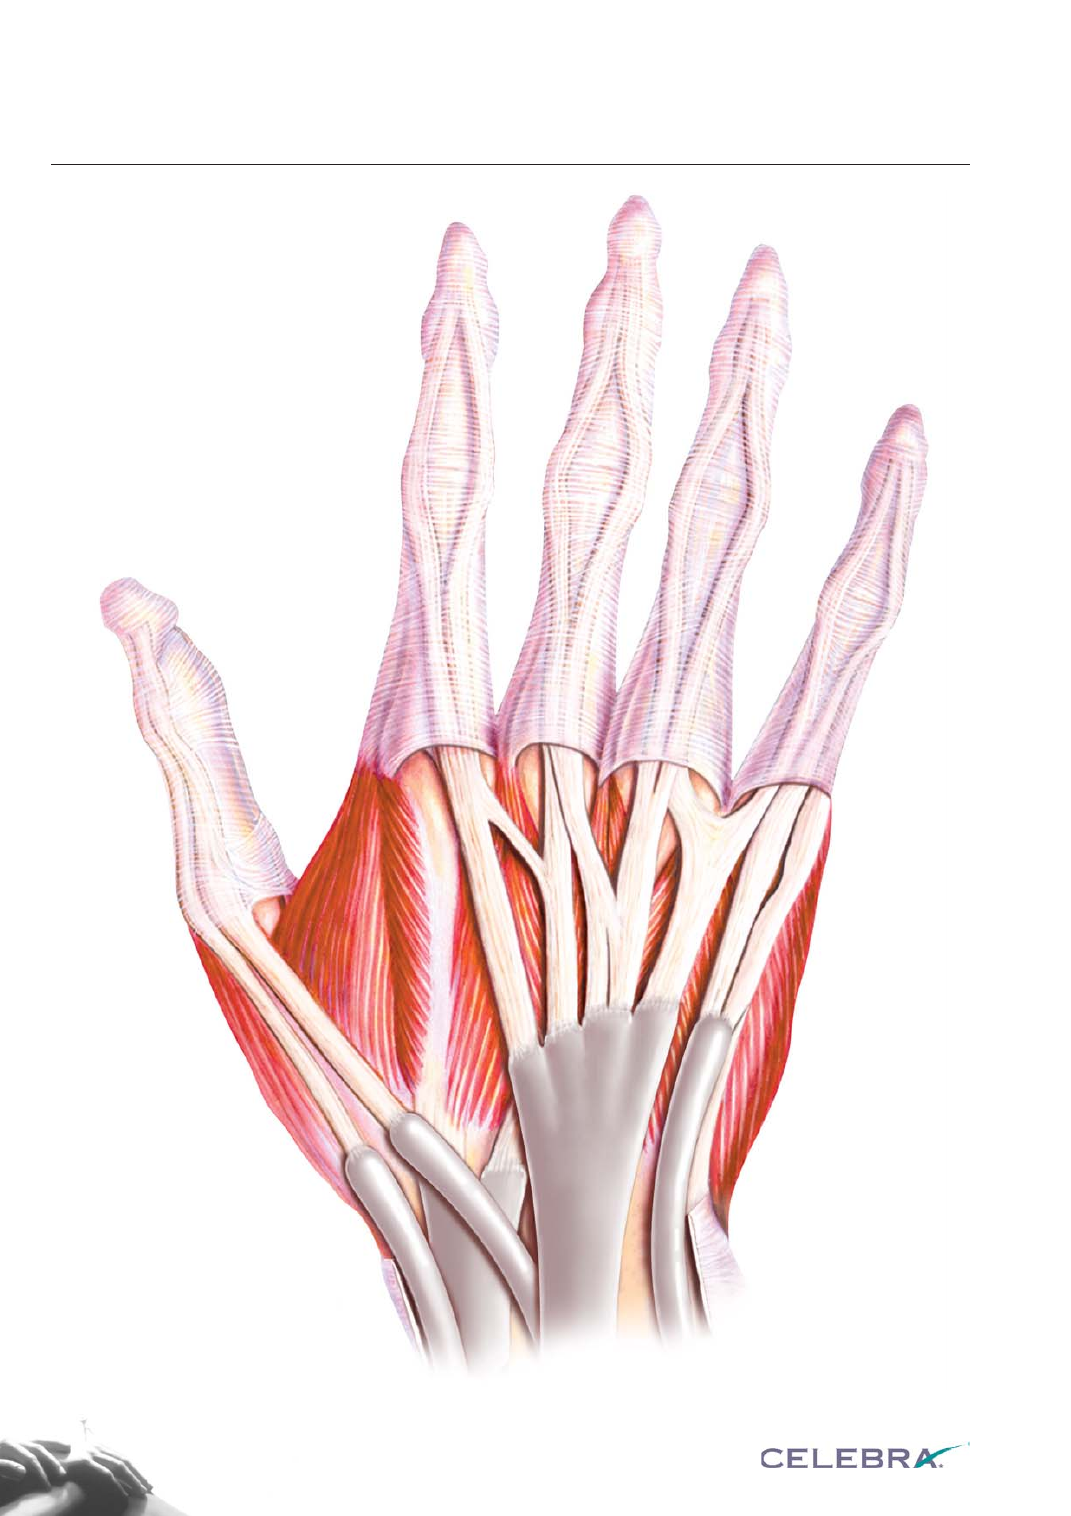 back of the hand muscles | muscles | Pinterest | Muscles, Hand ...